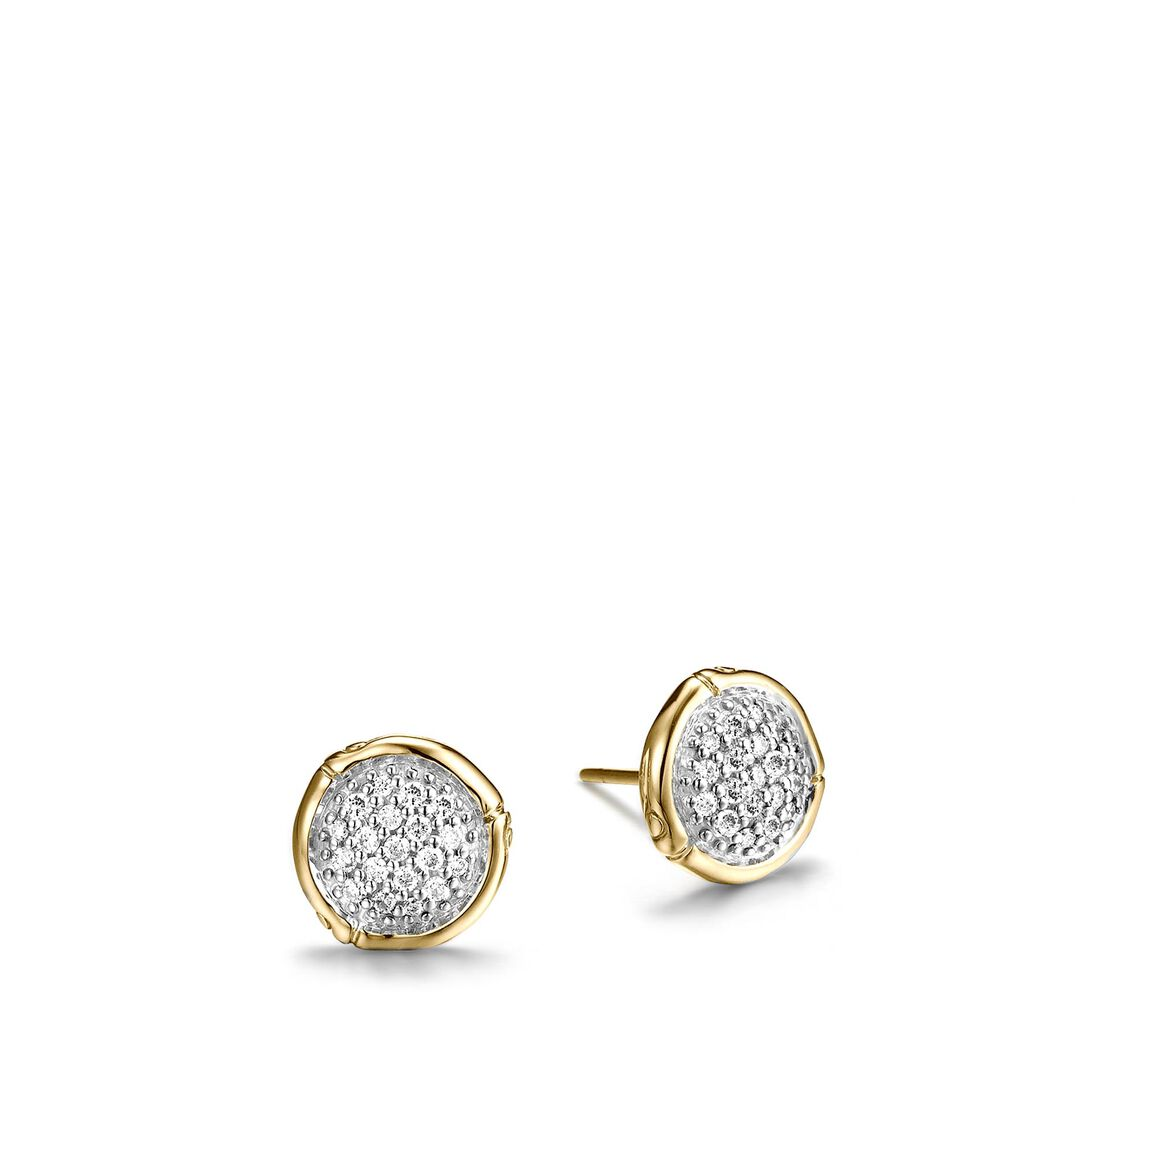 Bamboo Stud Earring in 18K Gold with Diamonds